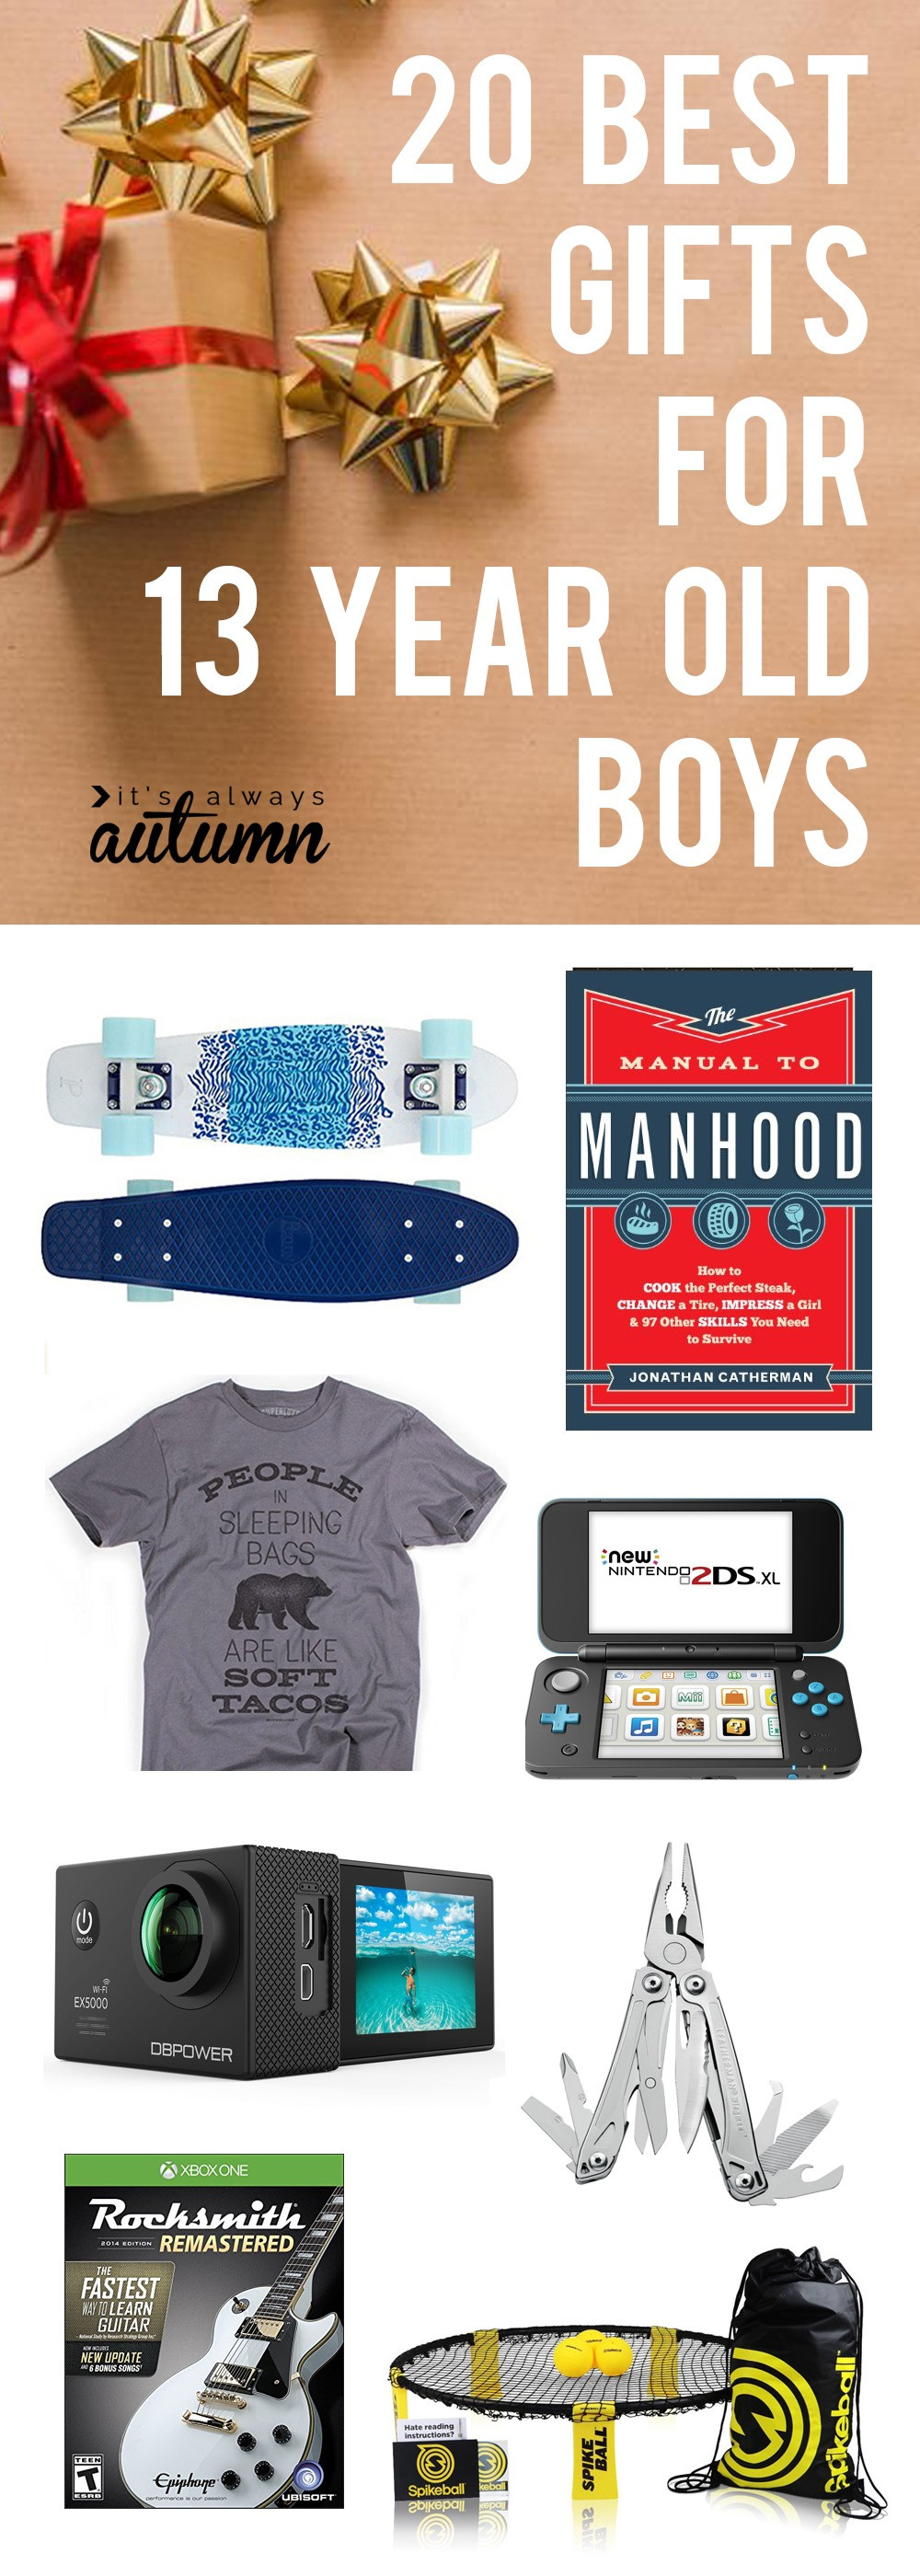 Best ideas about Birthday Gift Ideas For 12 Year Old Boy . Save or Pin Christmas Presents For 13 Year Old Boy Now.